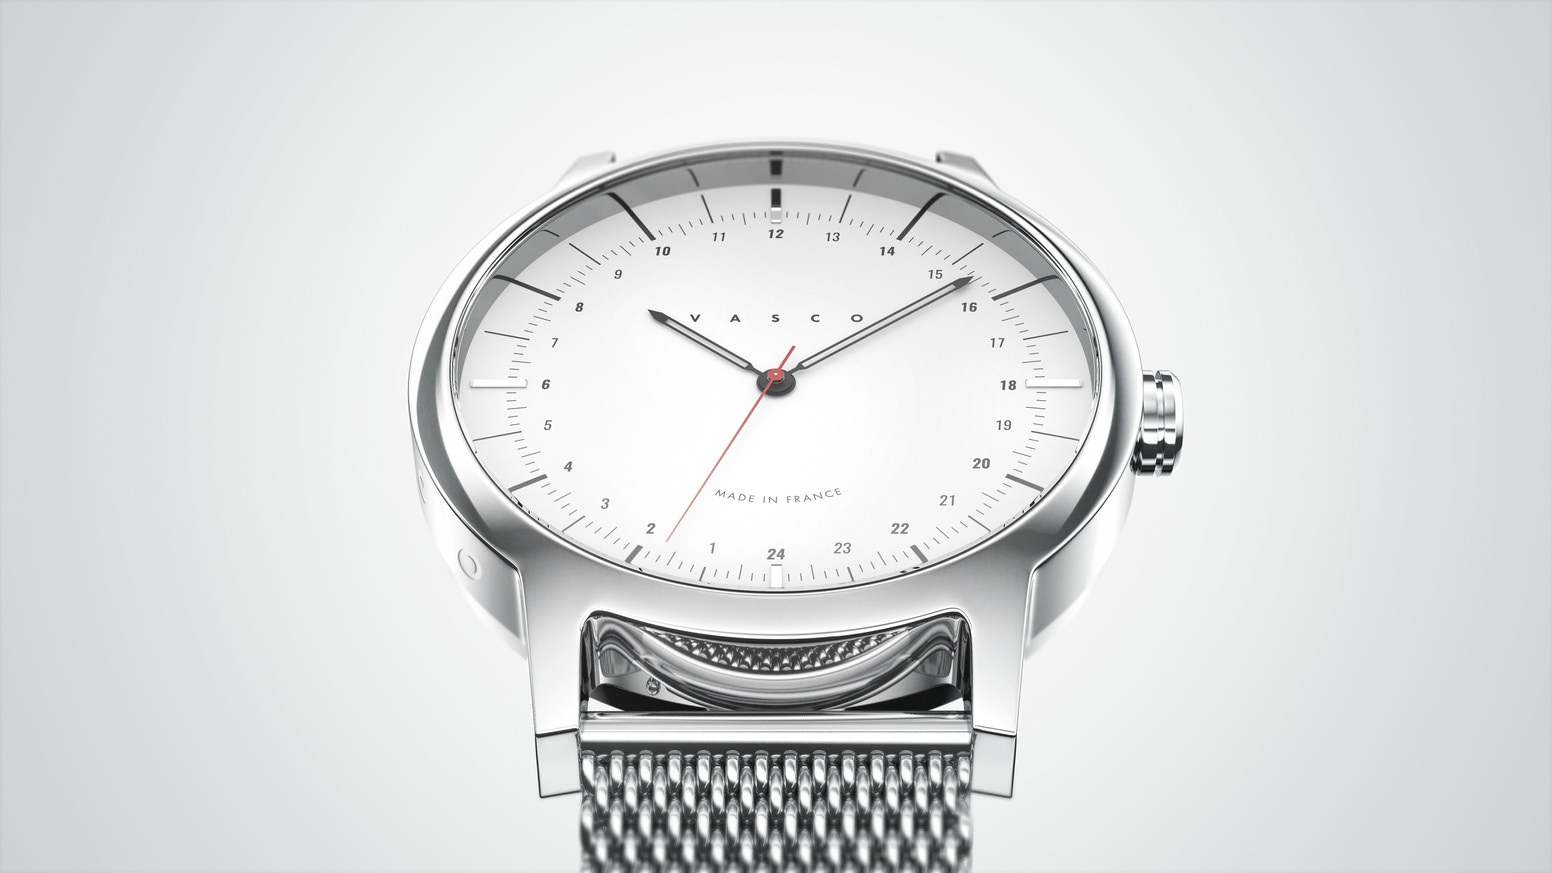 Vasco watch new 24h timepieces by benjamin chamfeuil kickstarter for Vasco watches